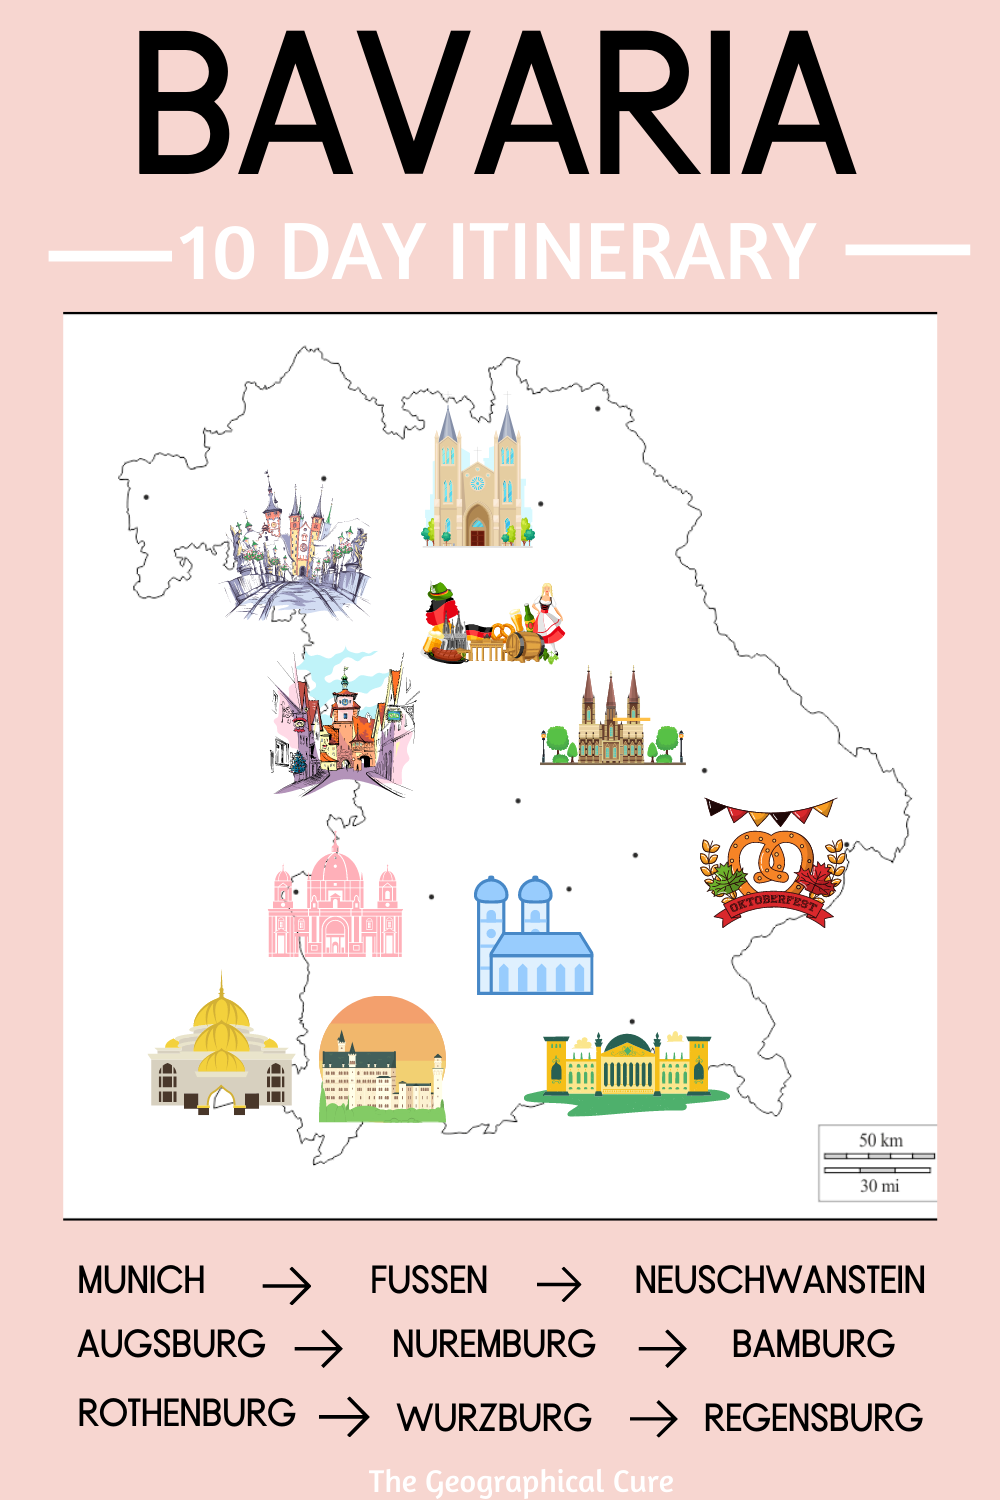 "bavaria Germany"" 10 Day Road Trip Itinerary"